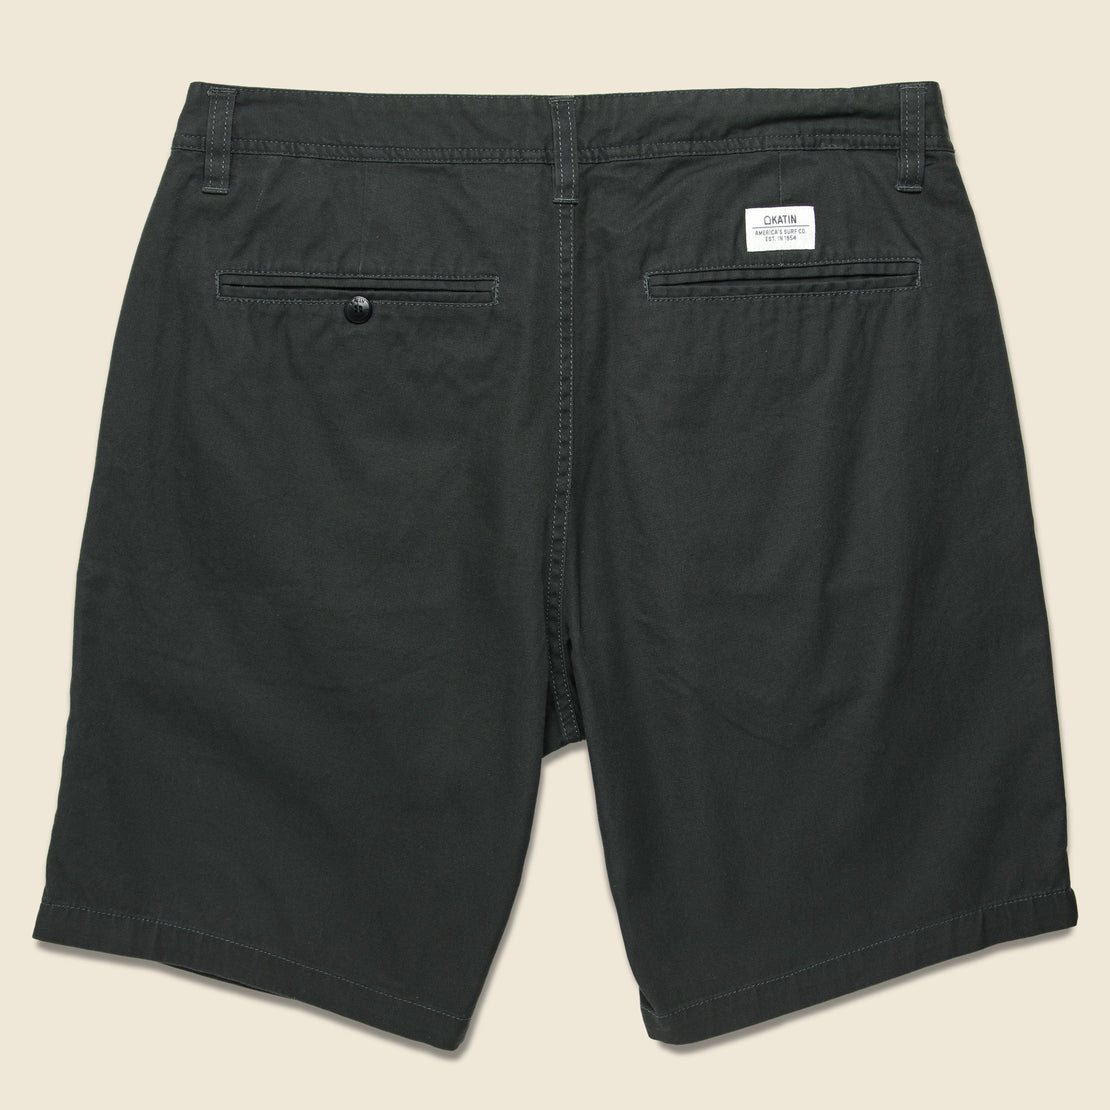 Cove Short - Black - Katin - STAG Provisions - Shorts - Solid